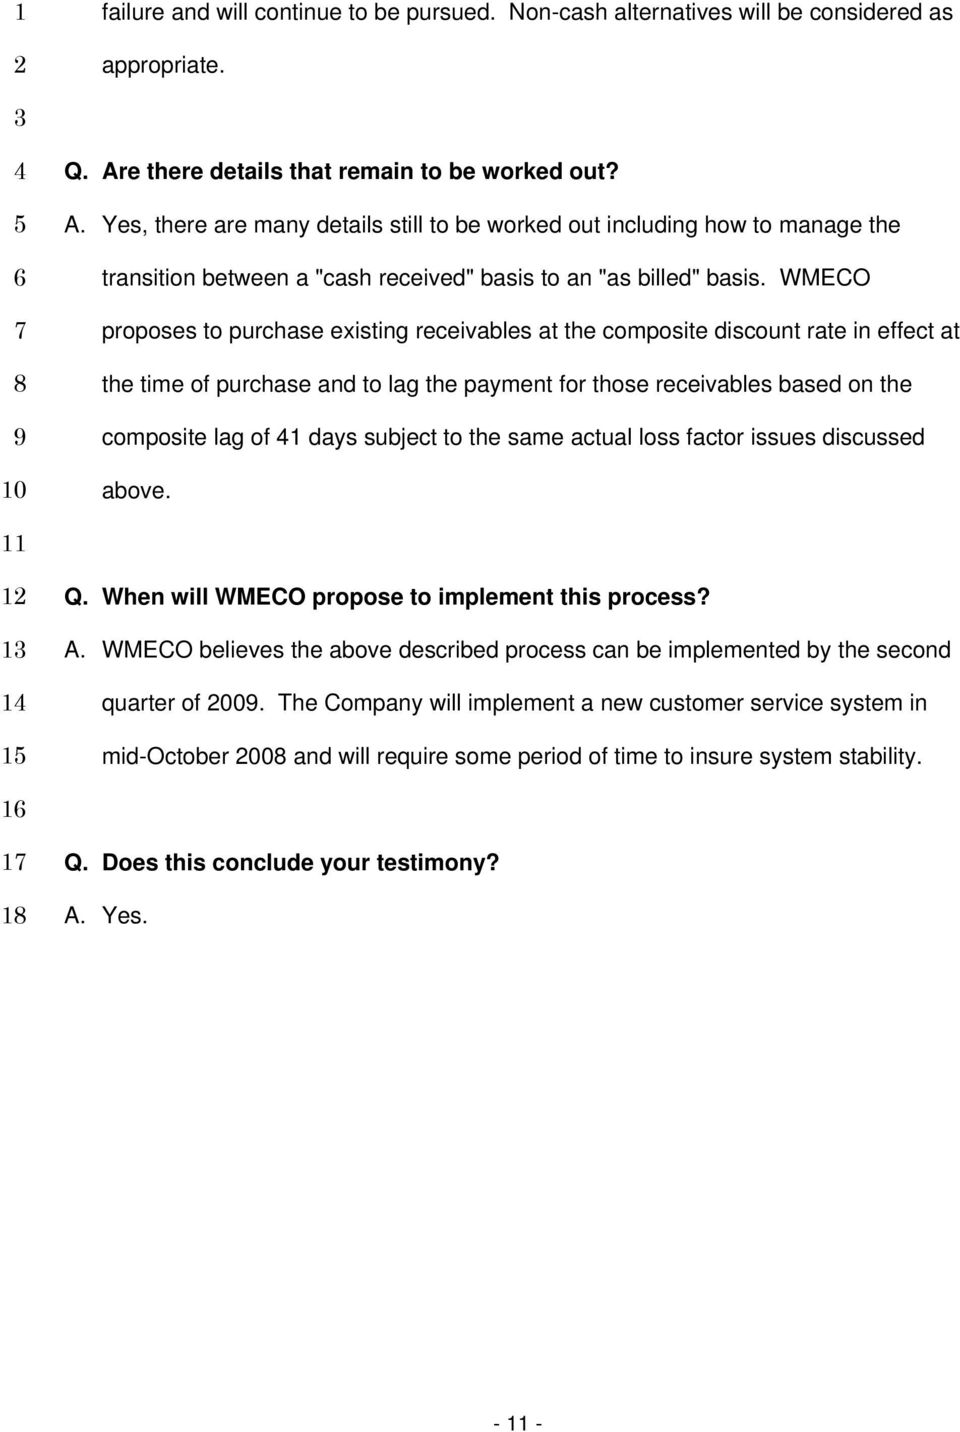 WMECO proposes to purchase existing receivables at the composite discount rate in effect at the time of purchase and to lag the payment for those receivables based on the composite lag of 1 days